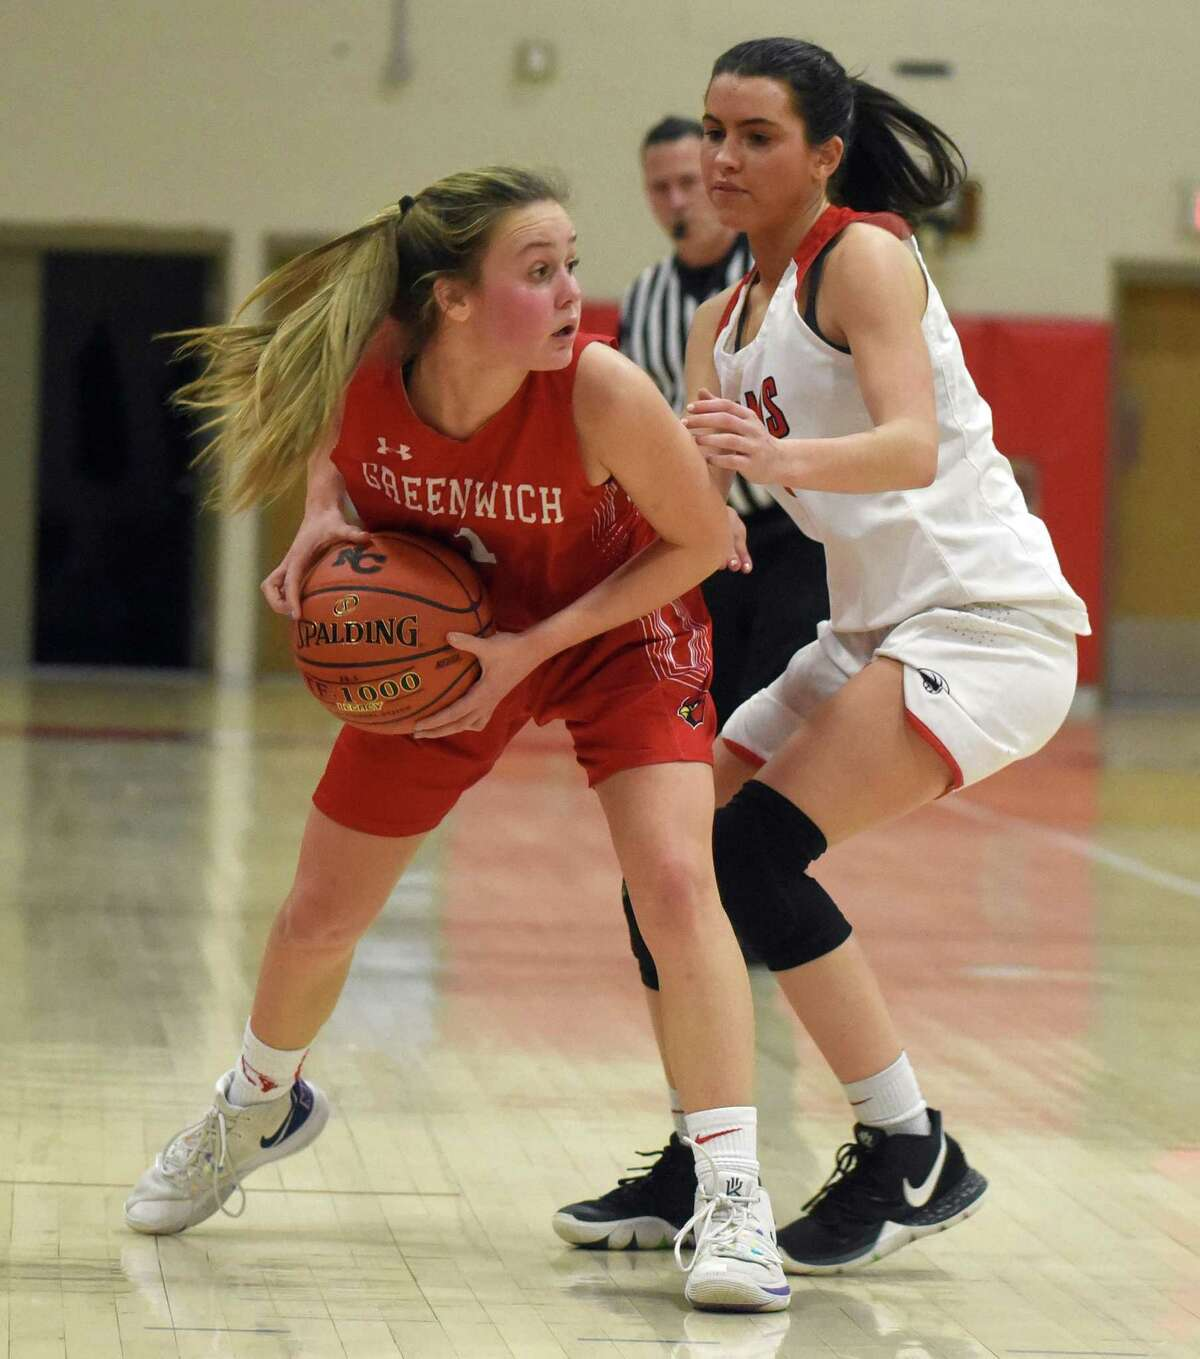 Greenwich's Ava Sollenne (1) looks to pass while under pressure from New Canaan's Riana Afshar during a girls basketball game at New Canaan High School on Tuesday, Jan. 7, 2020.